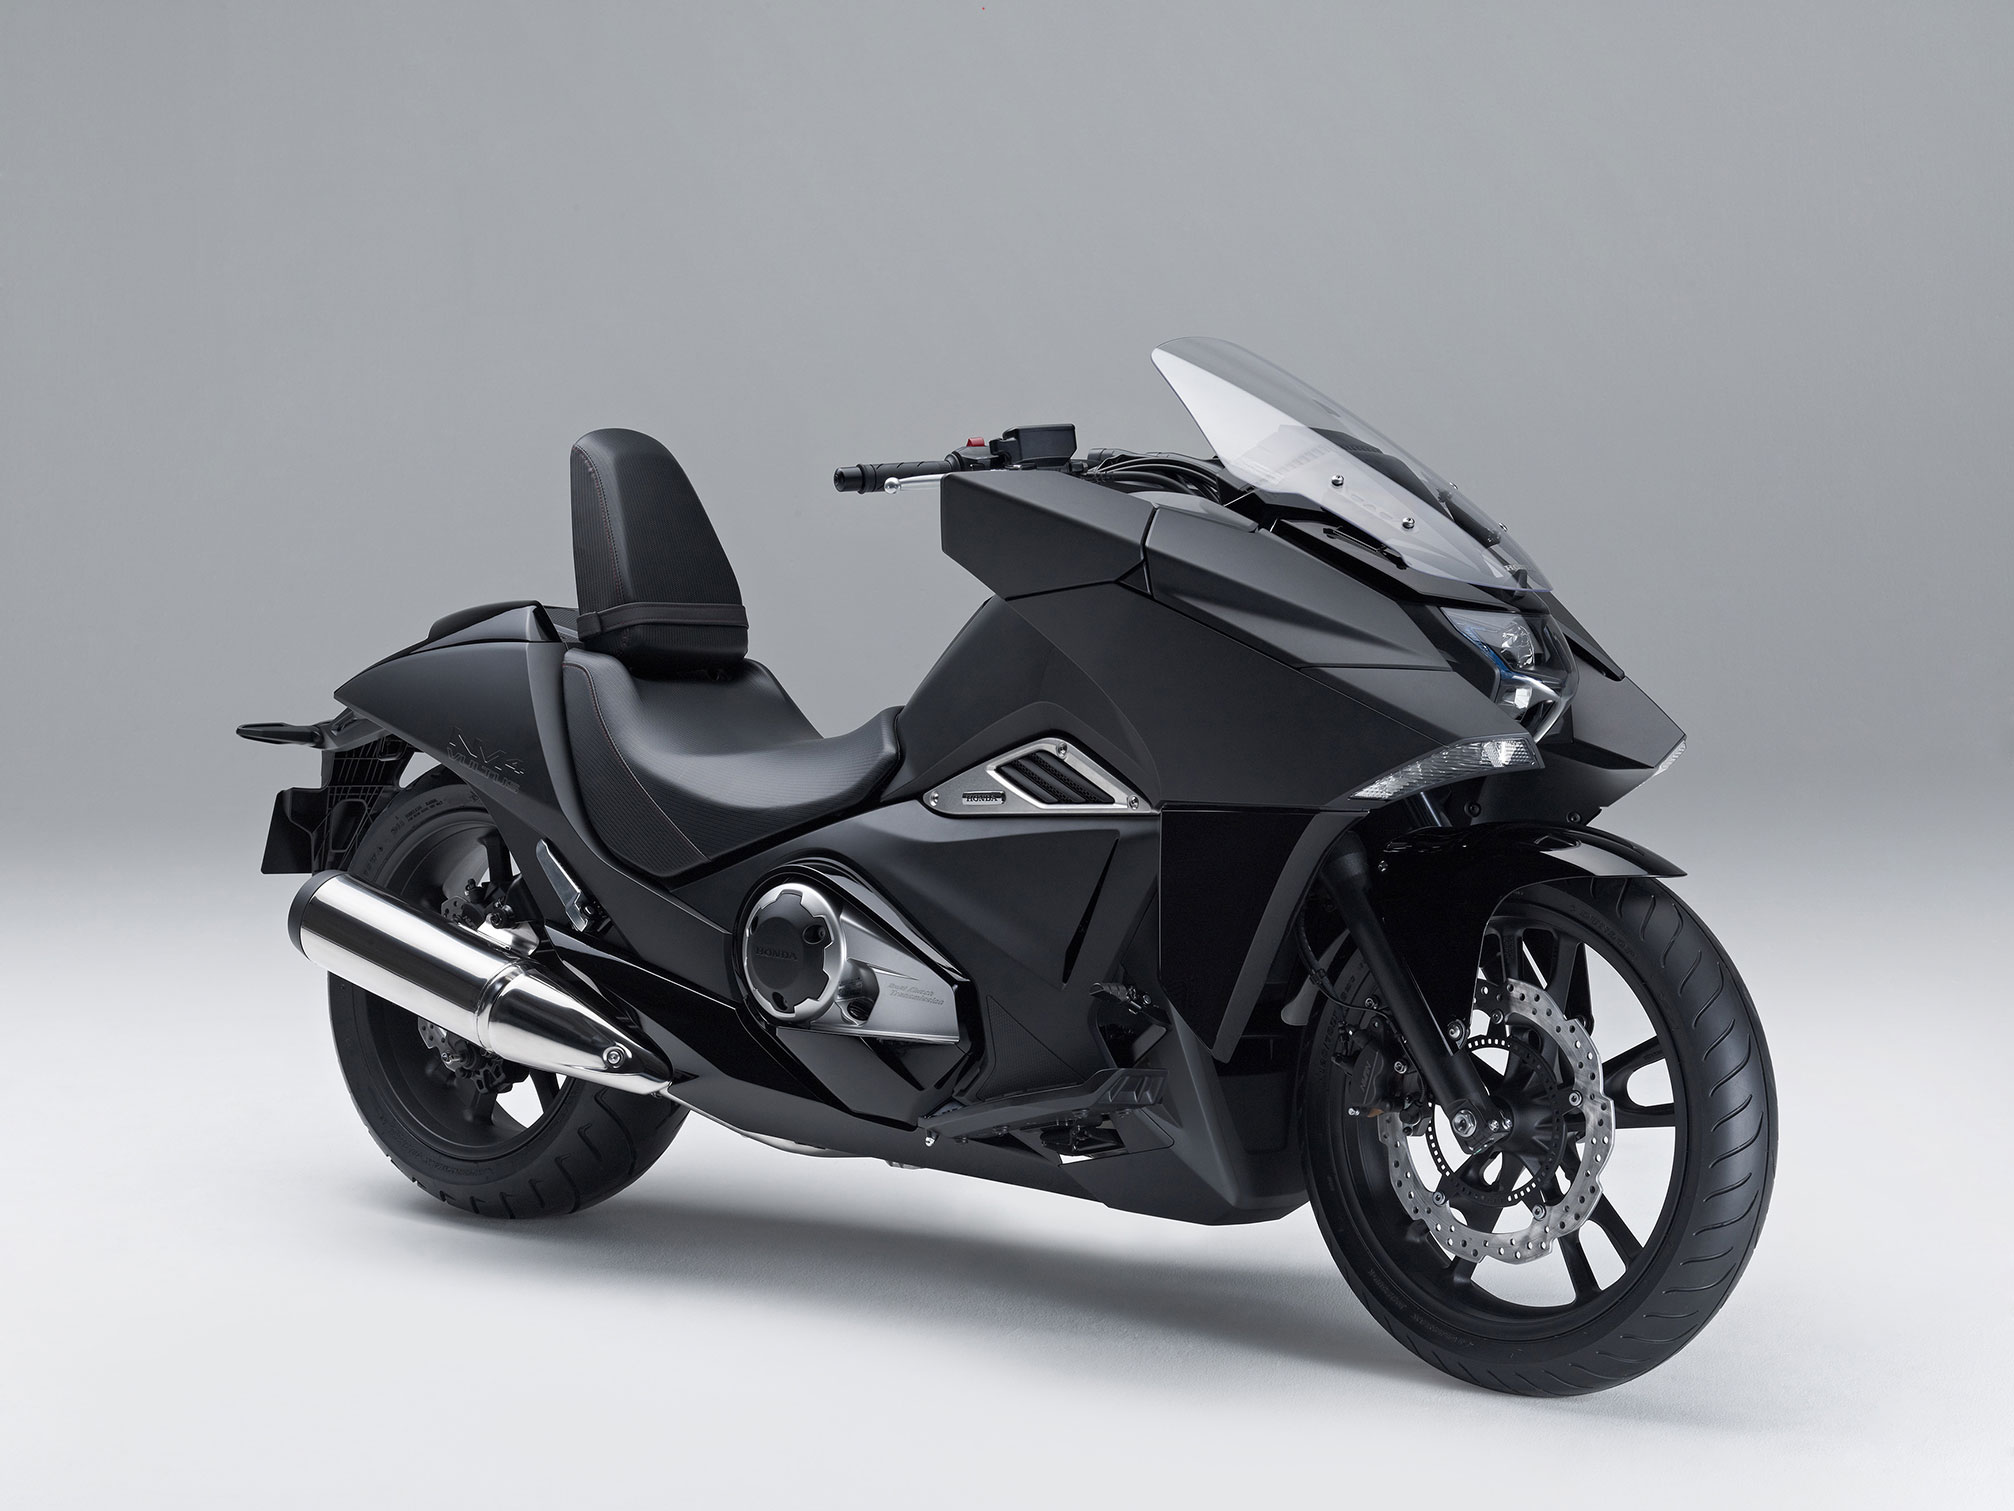 2014 Honda Motorcycle Models at Total Motorcycle